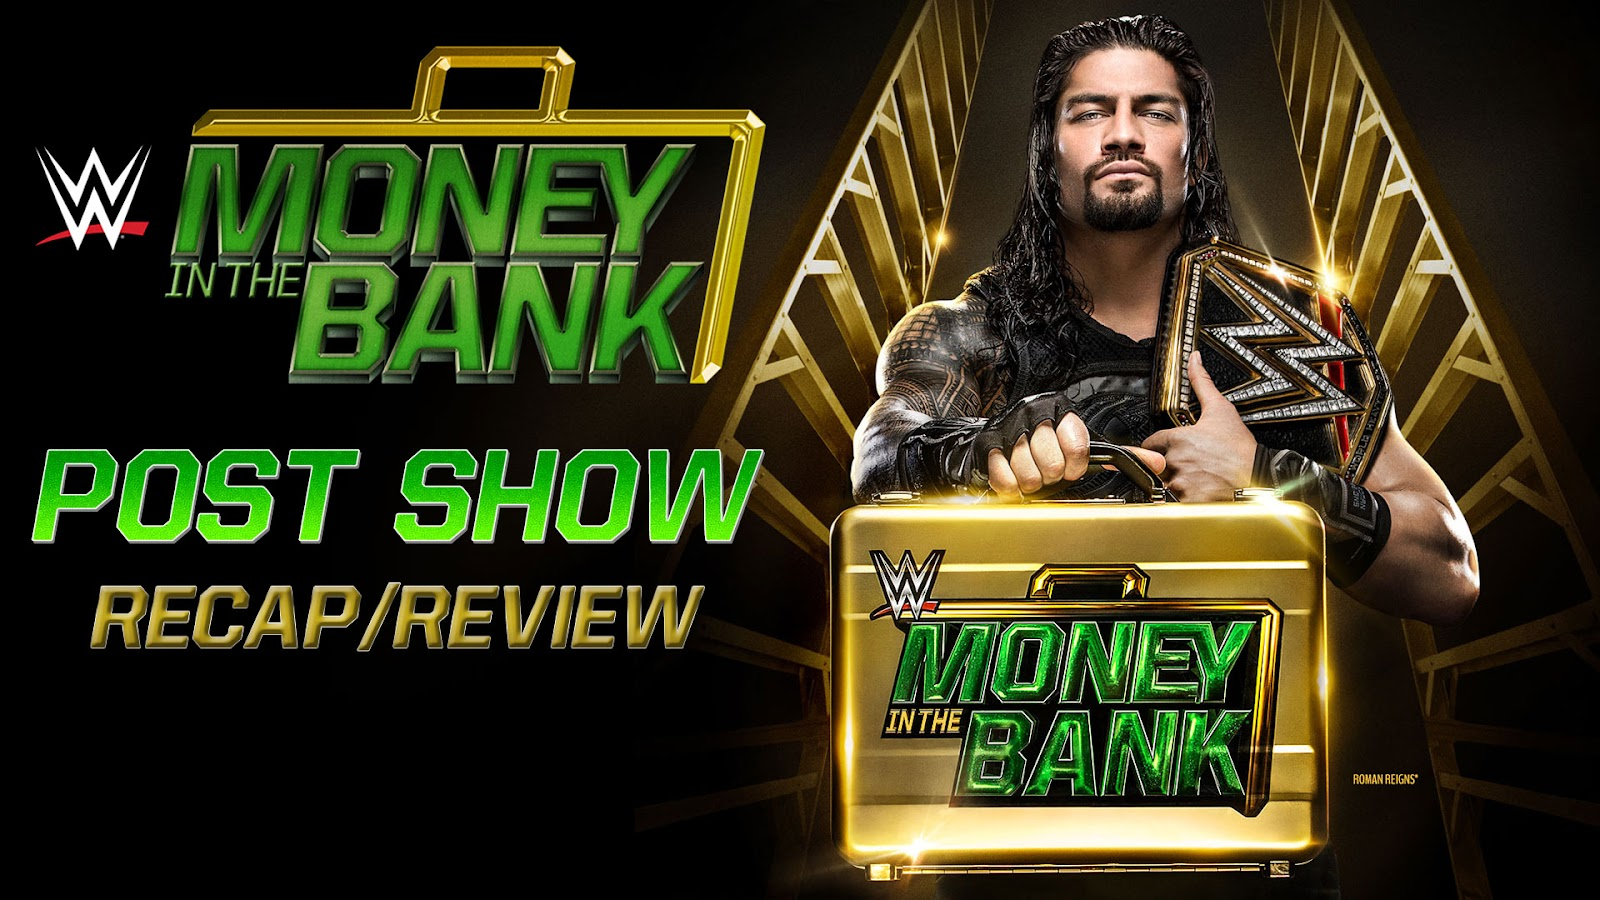 WWE Money in the Bank 2016 Recap and Review Podcast